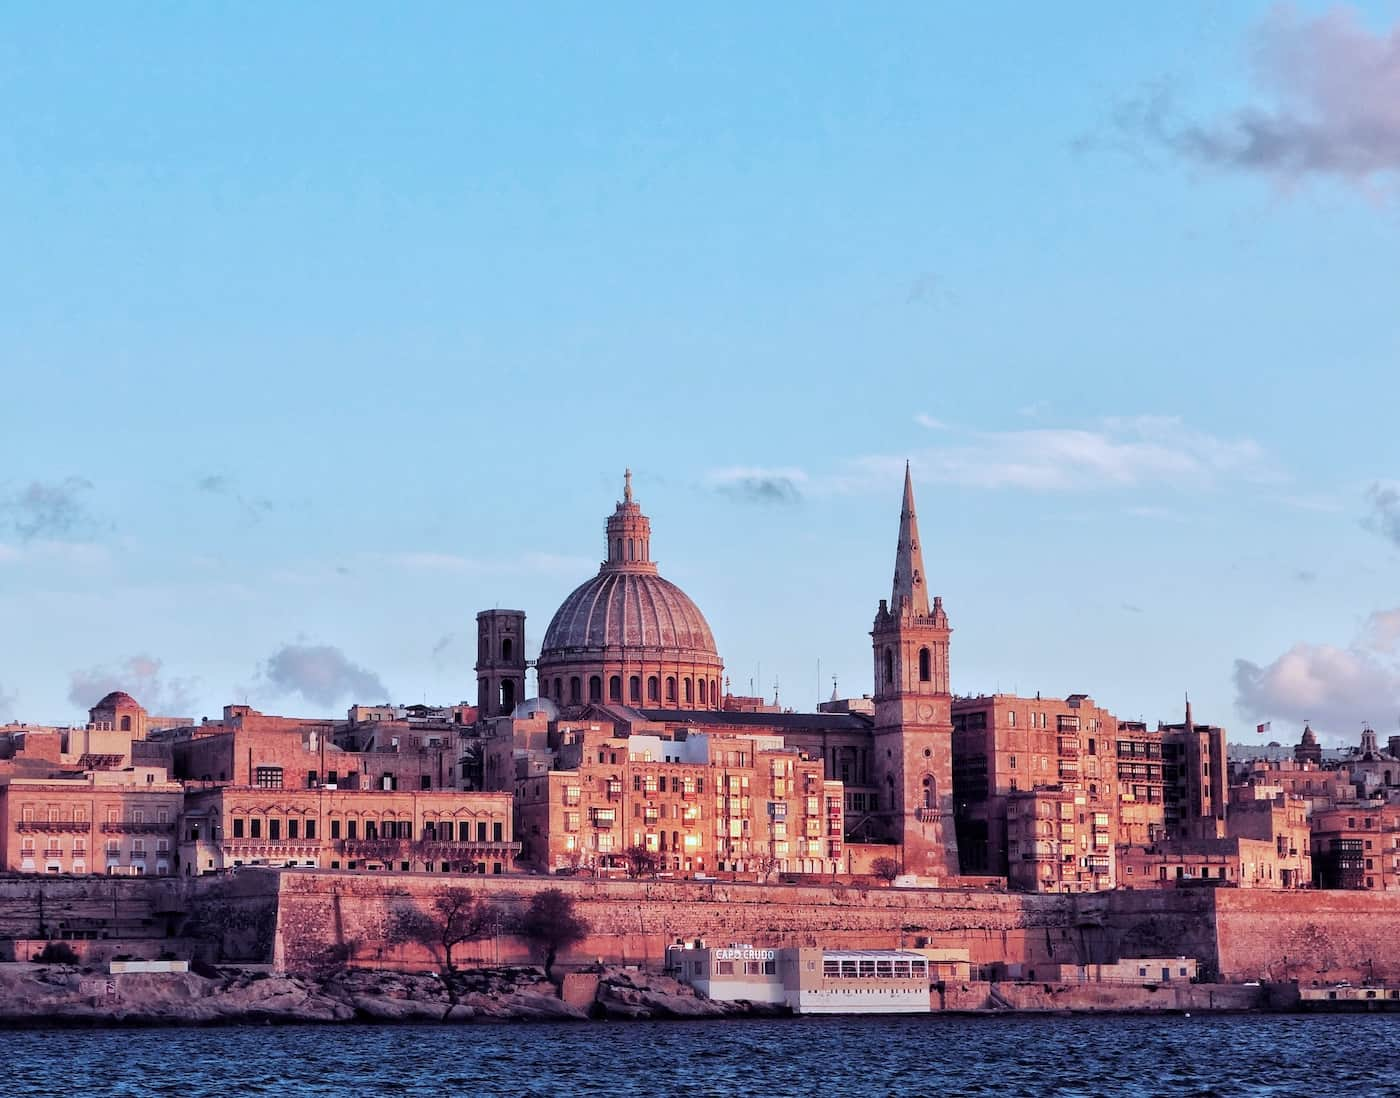 Dr. Joshua Ellul: Chairman of Malta Digital Innovation Authority Reveals Motivations Behind Launching a Masters in DLT Program at University of Malta